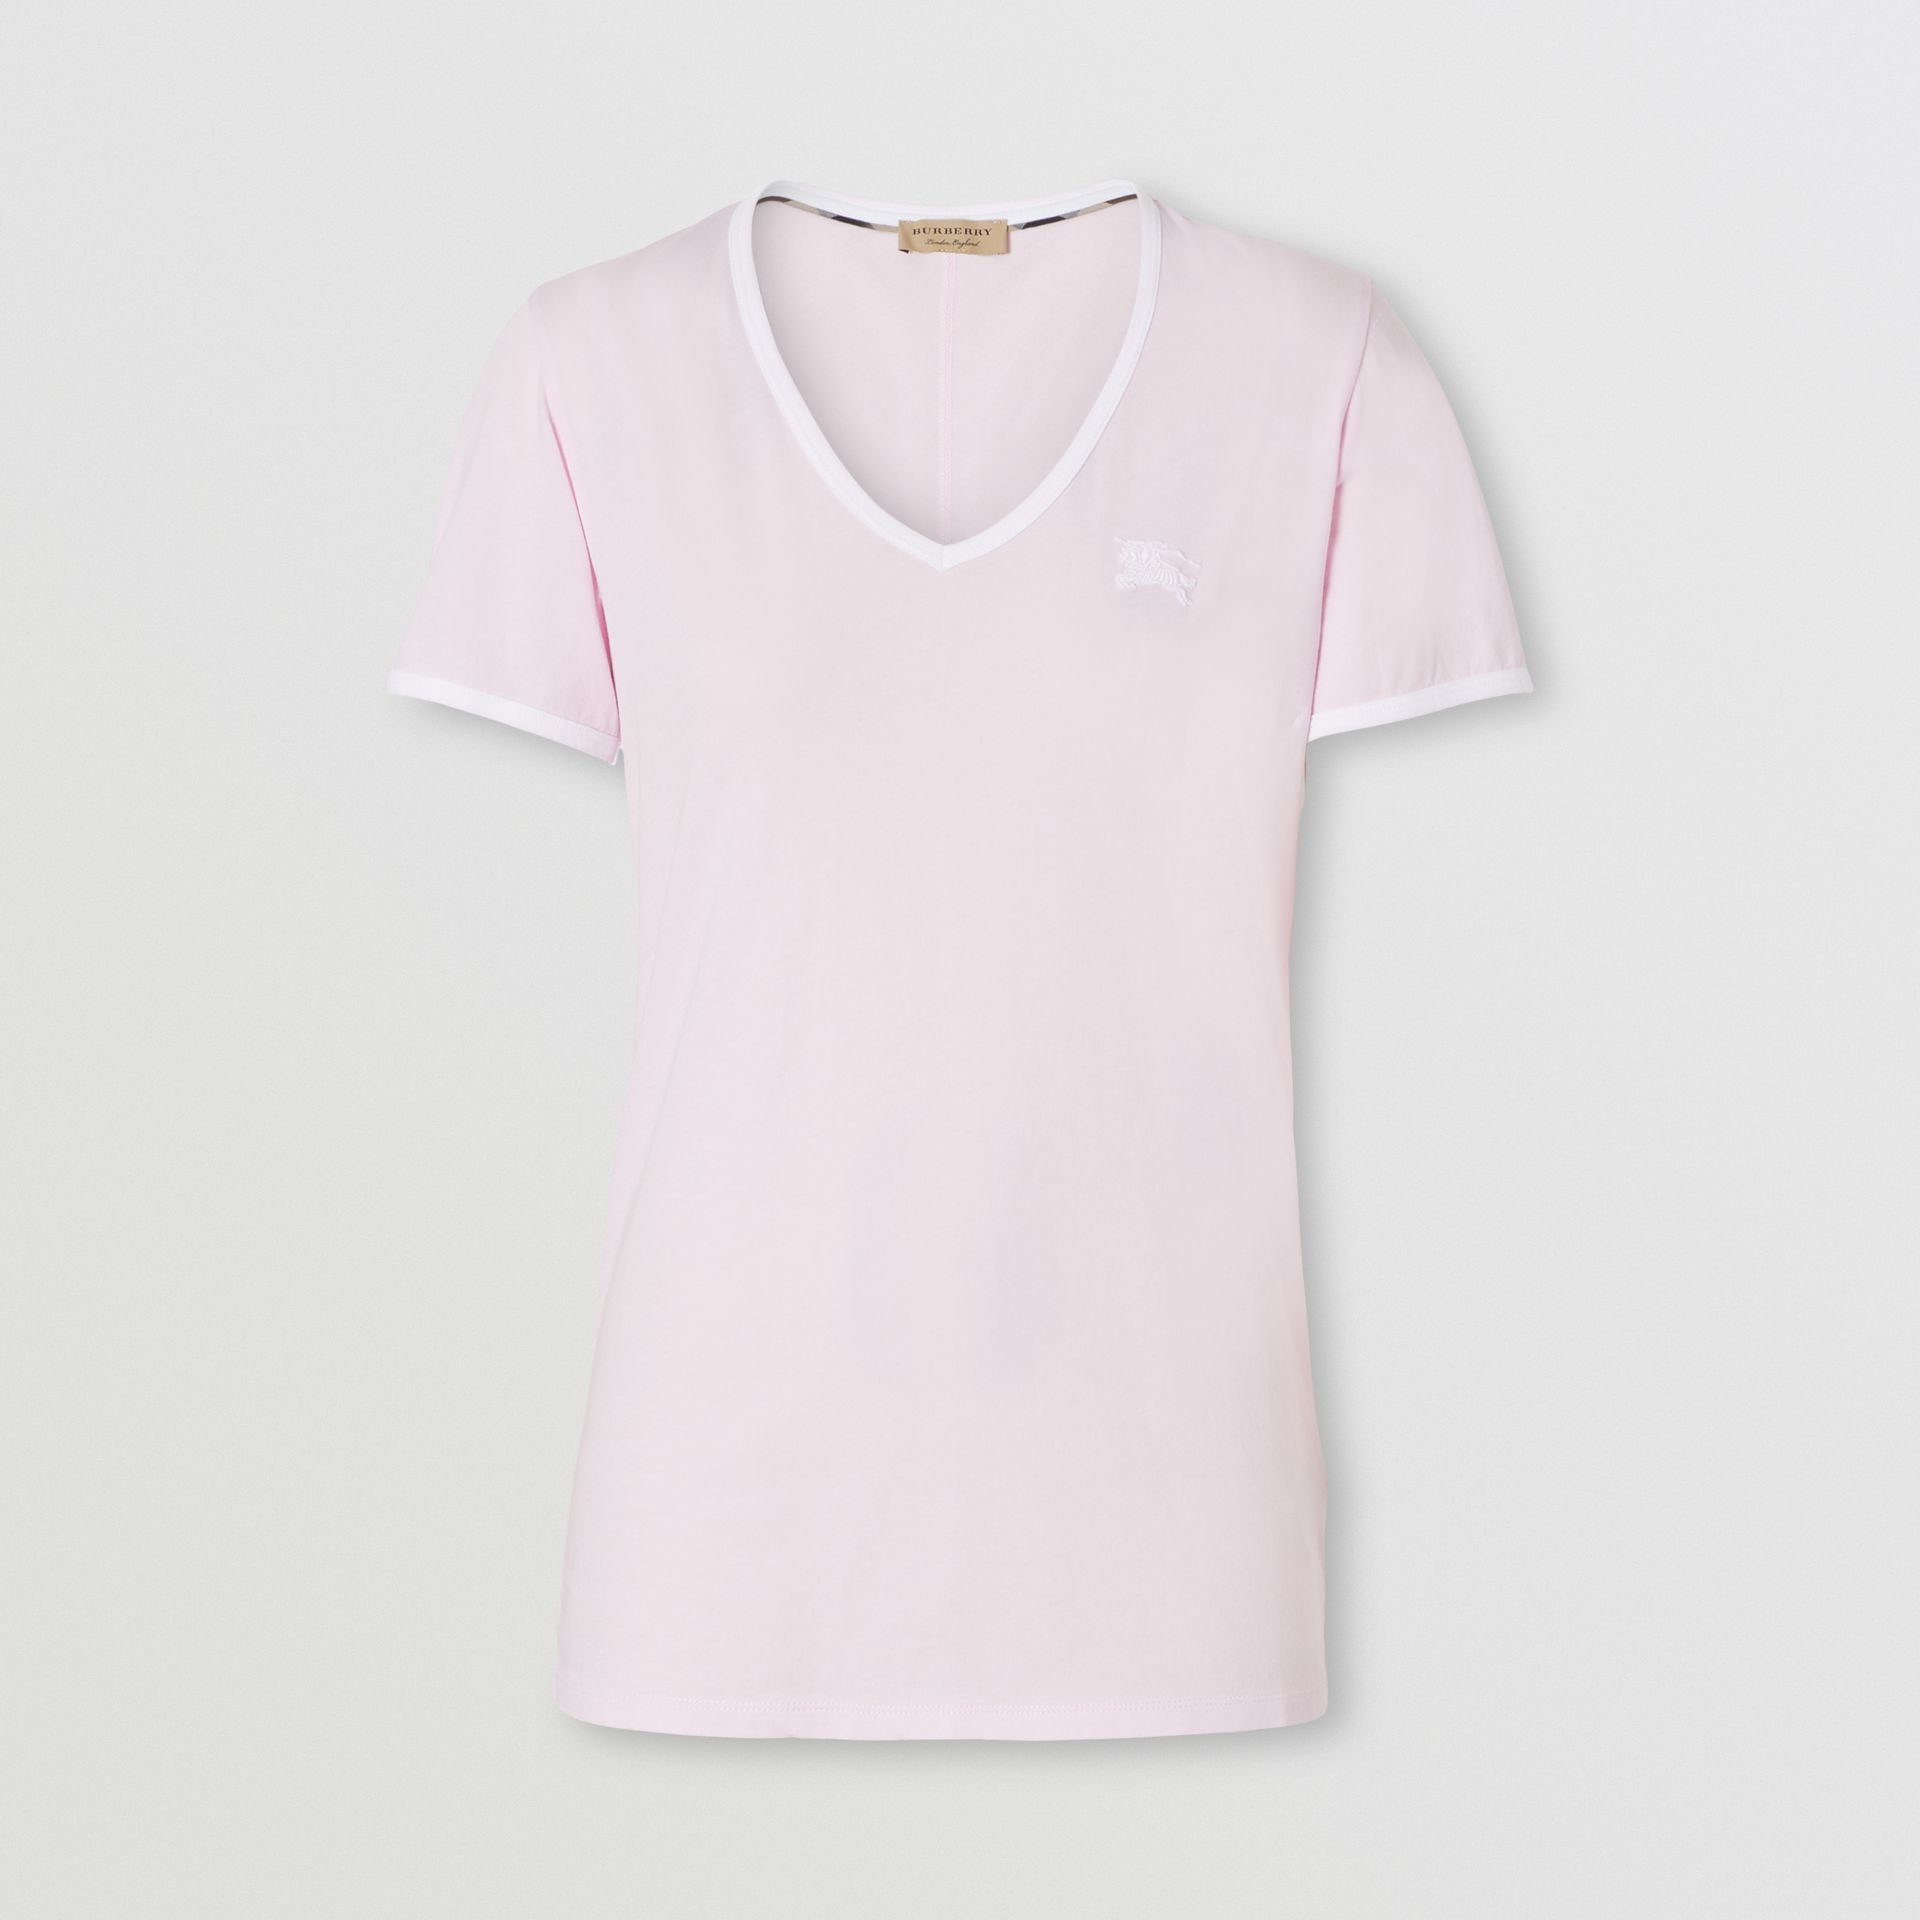 Embroidered EKD Cotton T-shirt in City Pink - Women | Burberry - gallery image 0